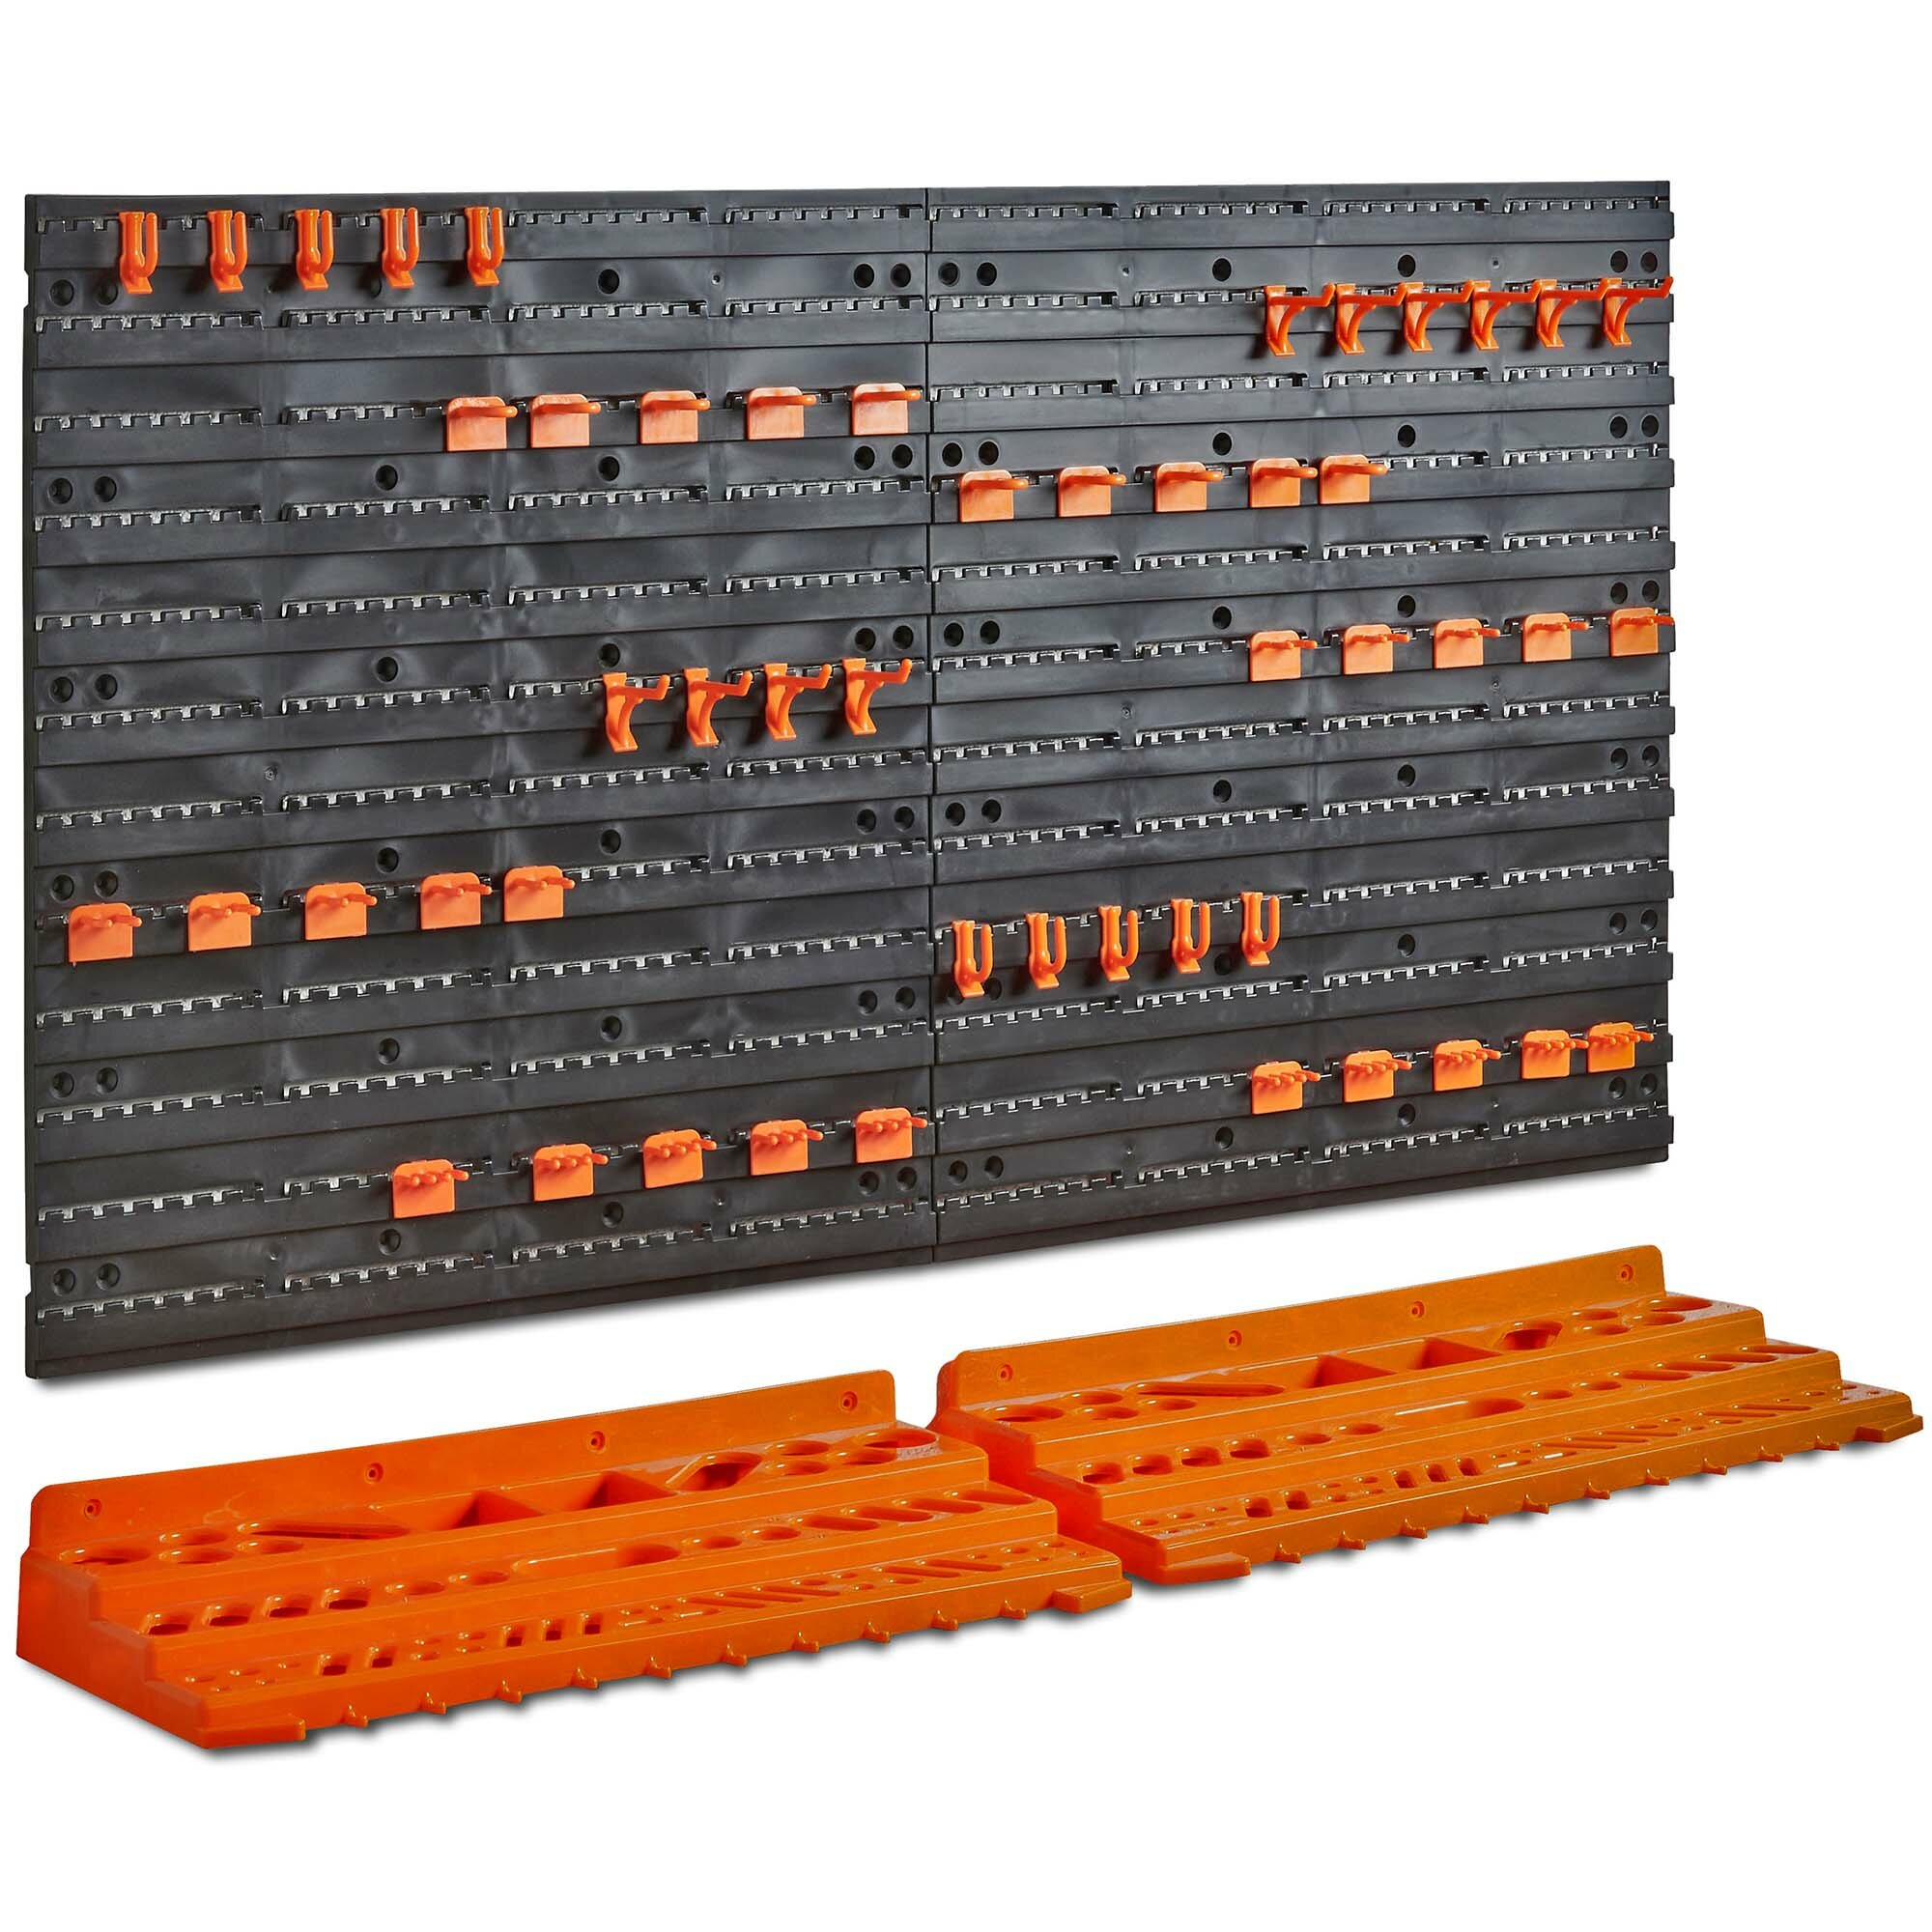 361b3364204 VonHaus 50 Piece Wall Mounted Plastic Pegboard and Shelf Tool Organizer 21